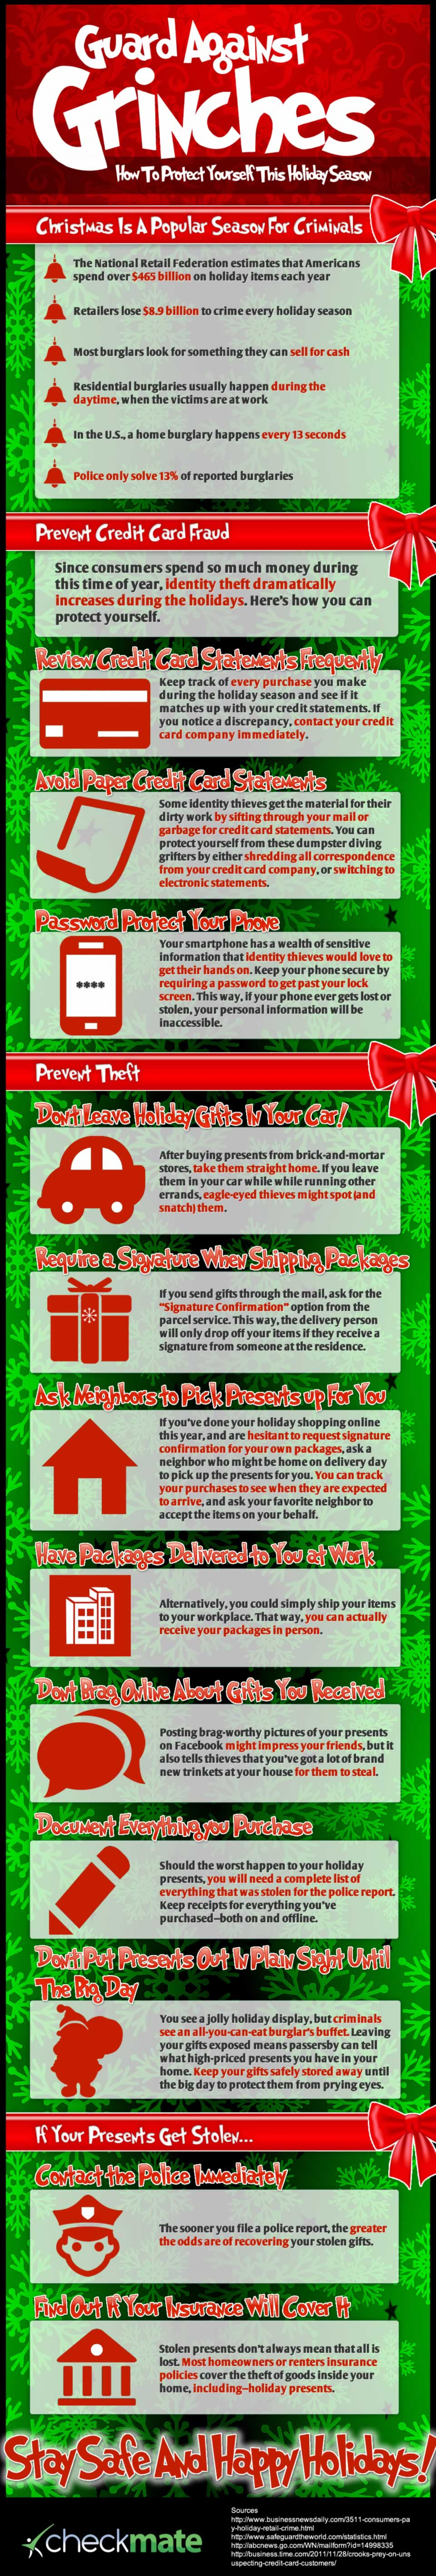 Guard Against Grinches—How To Protect Yourself From Theft This Holiday Season Infographic